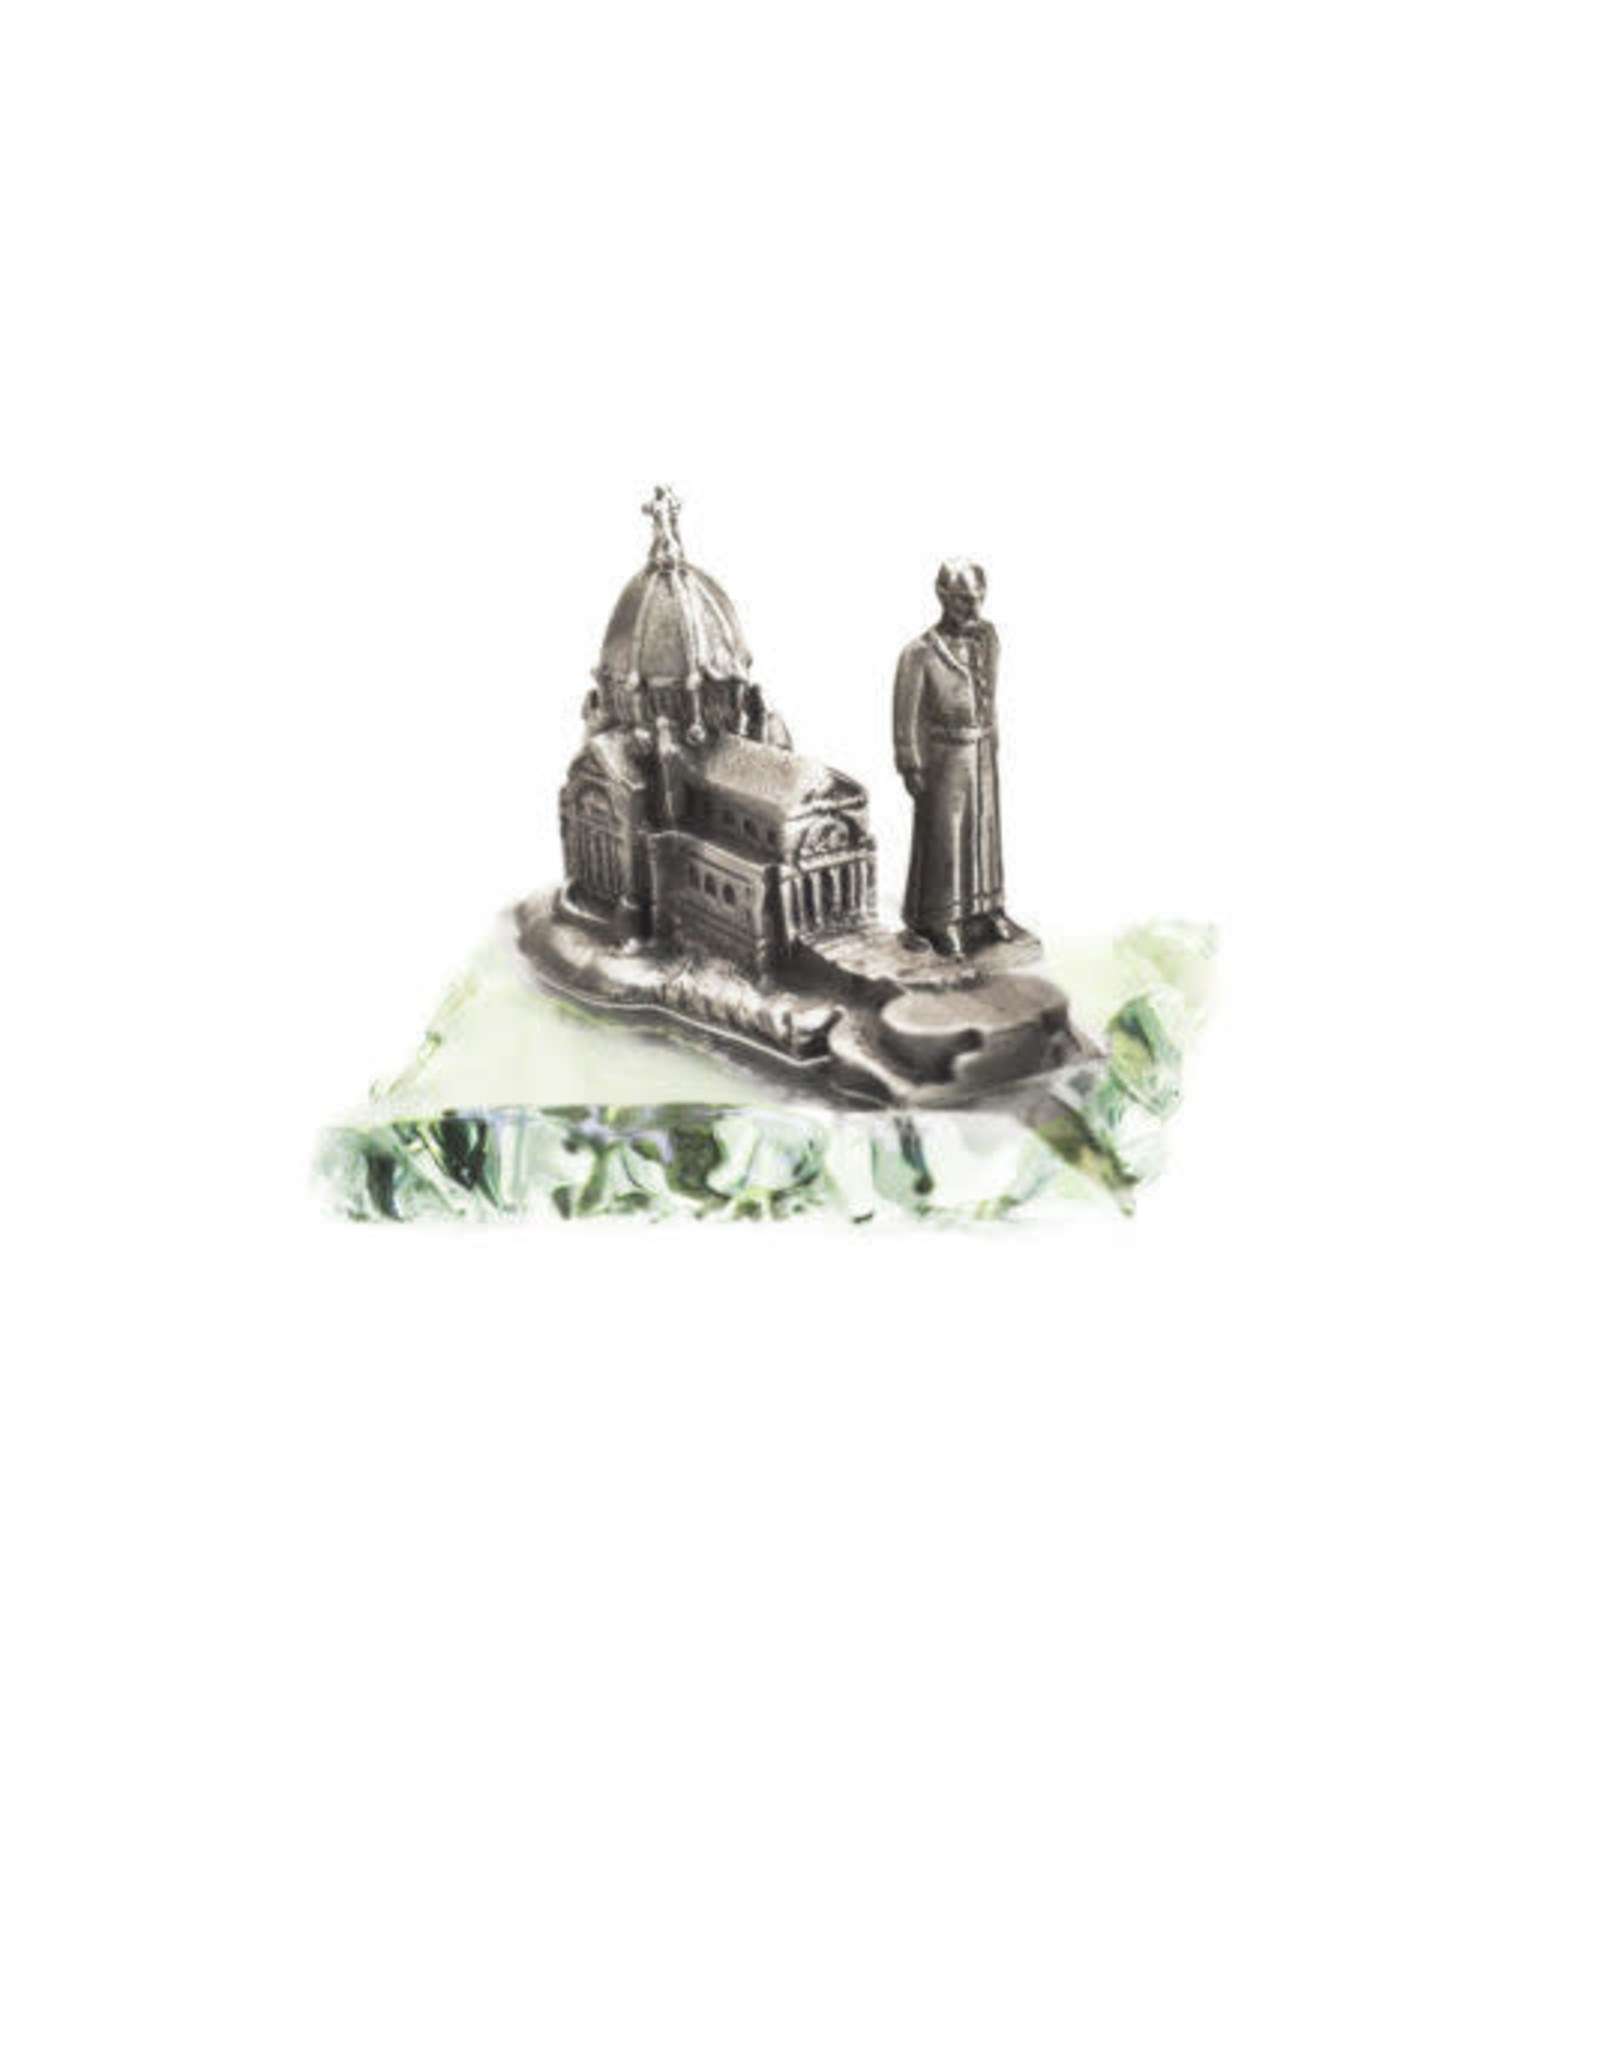 Miniature Replica of Saint-Joseph's Oratory